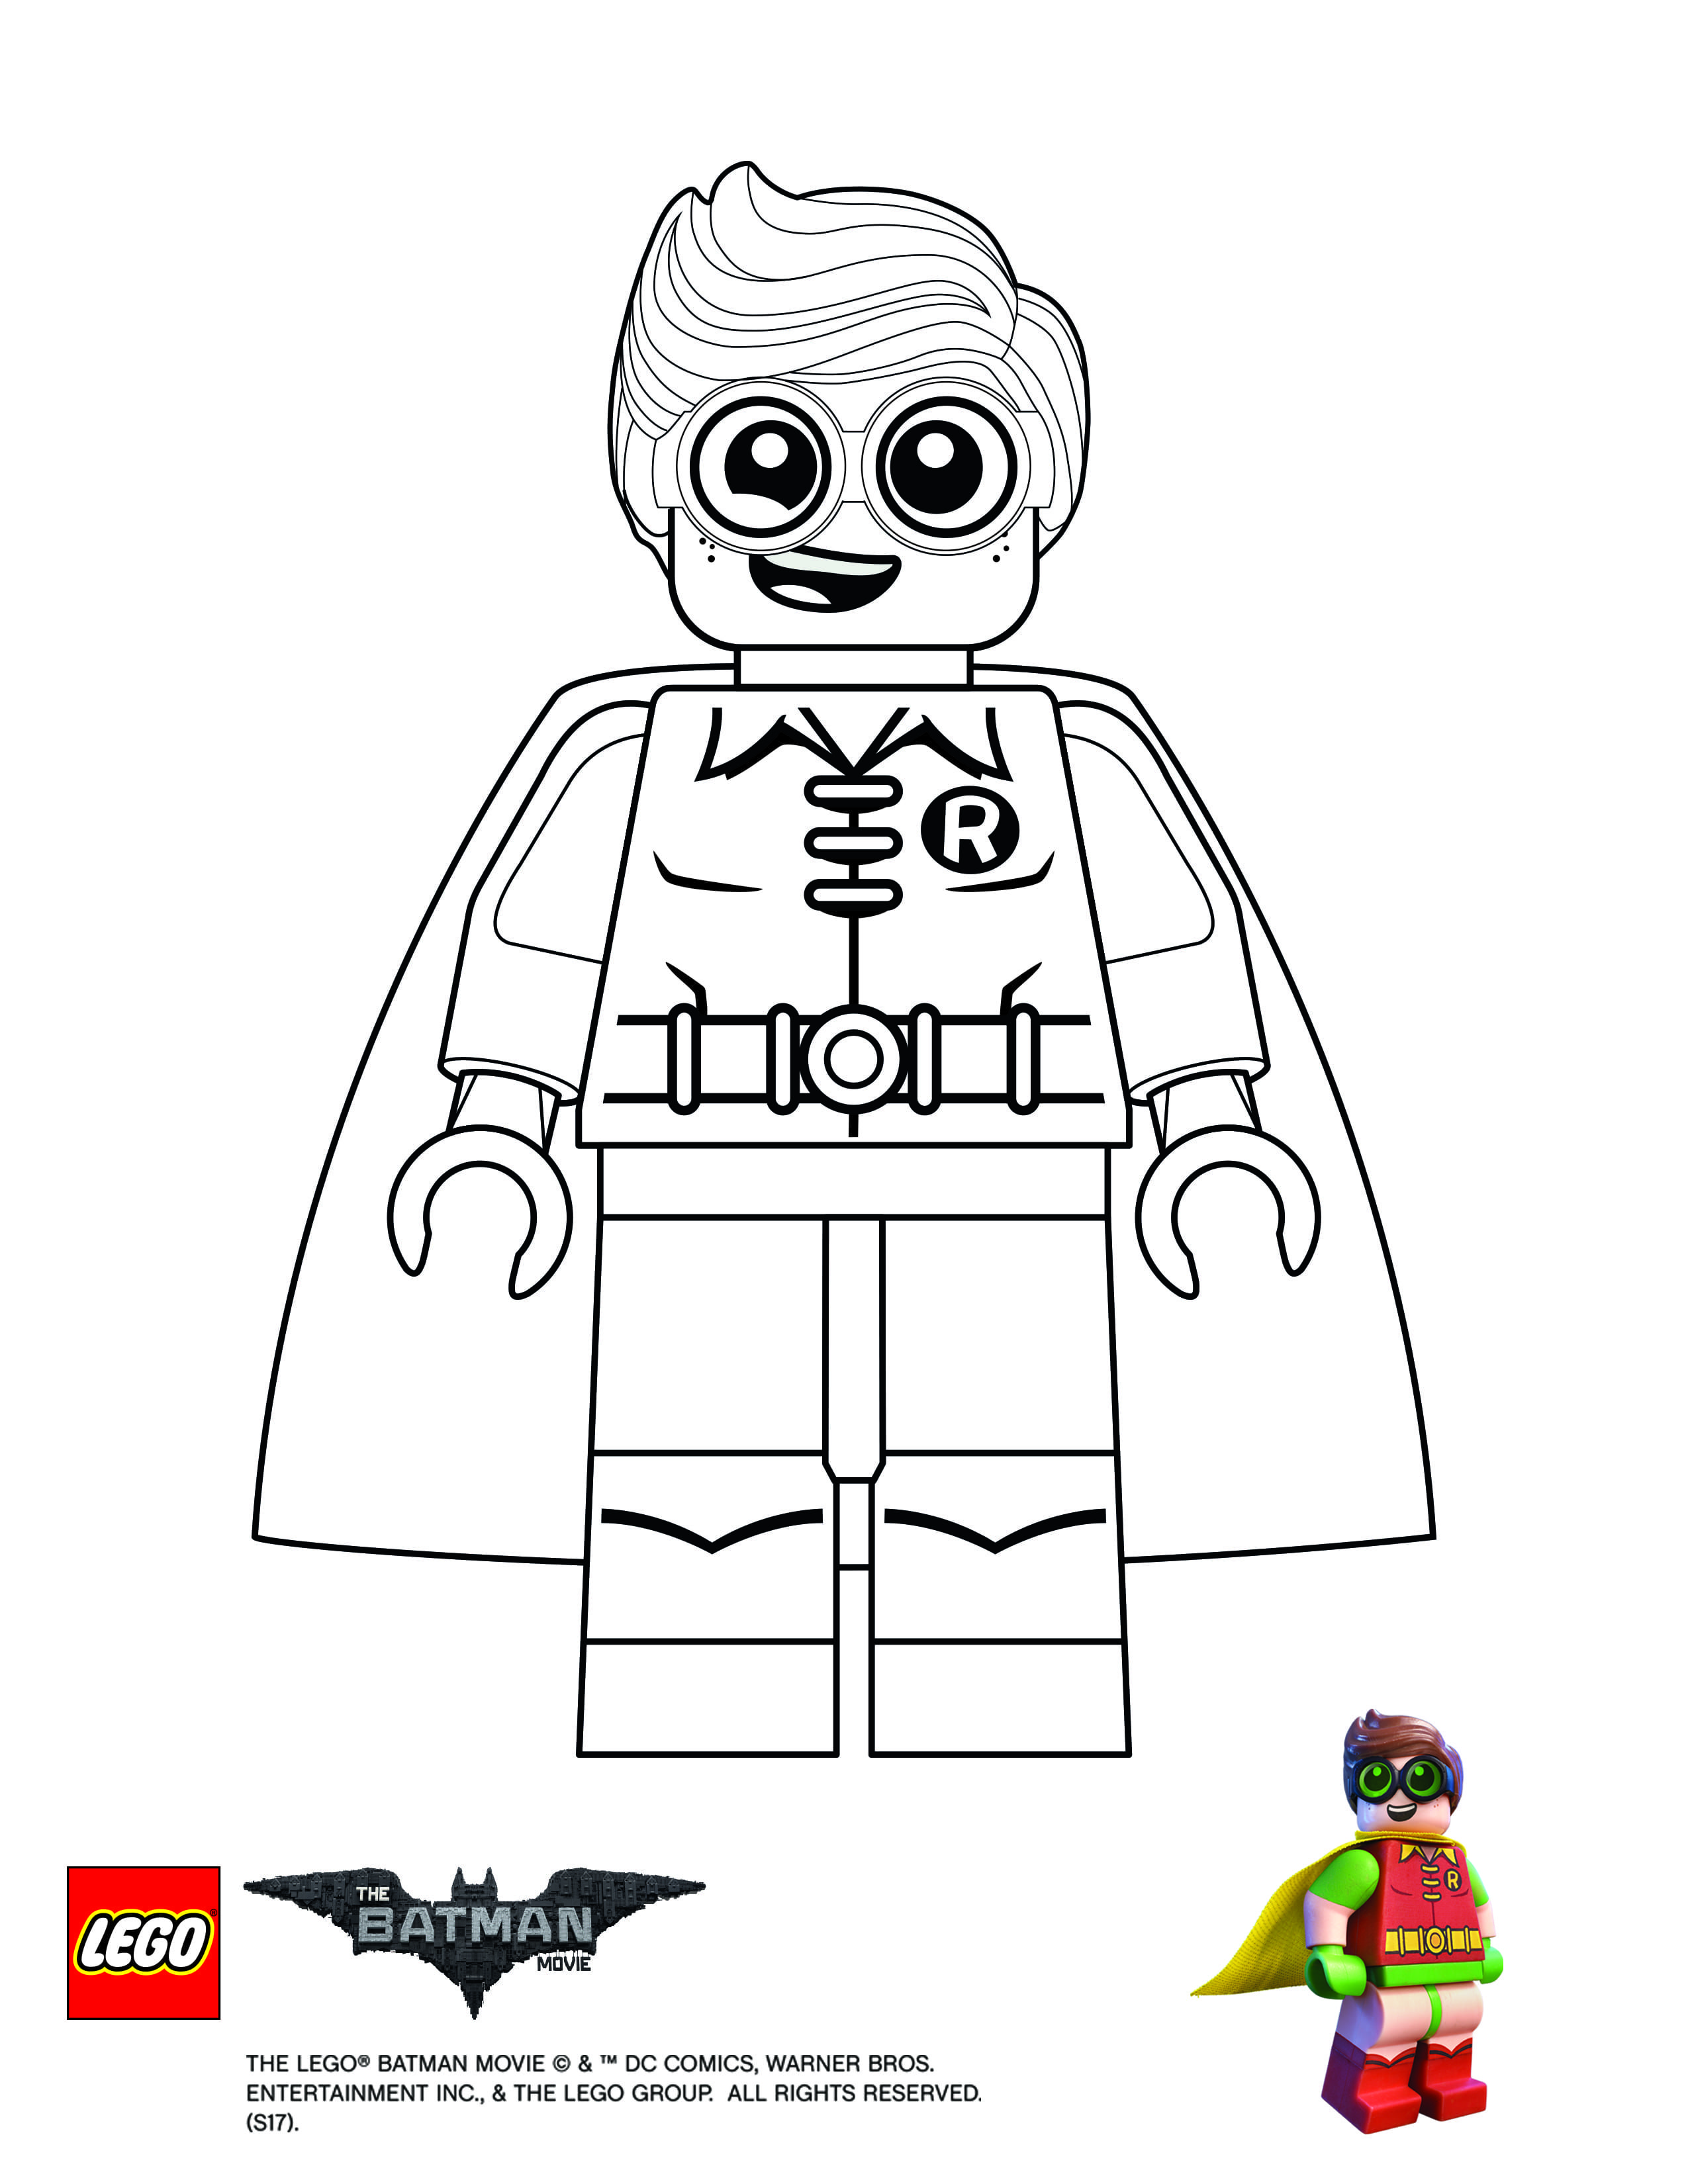 Coloring Page Robin With Images Batman Coloring Pages Lego